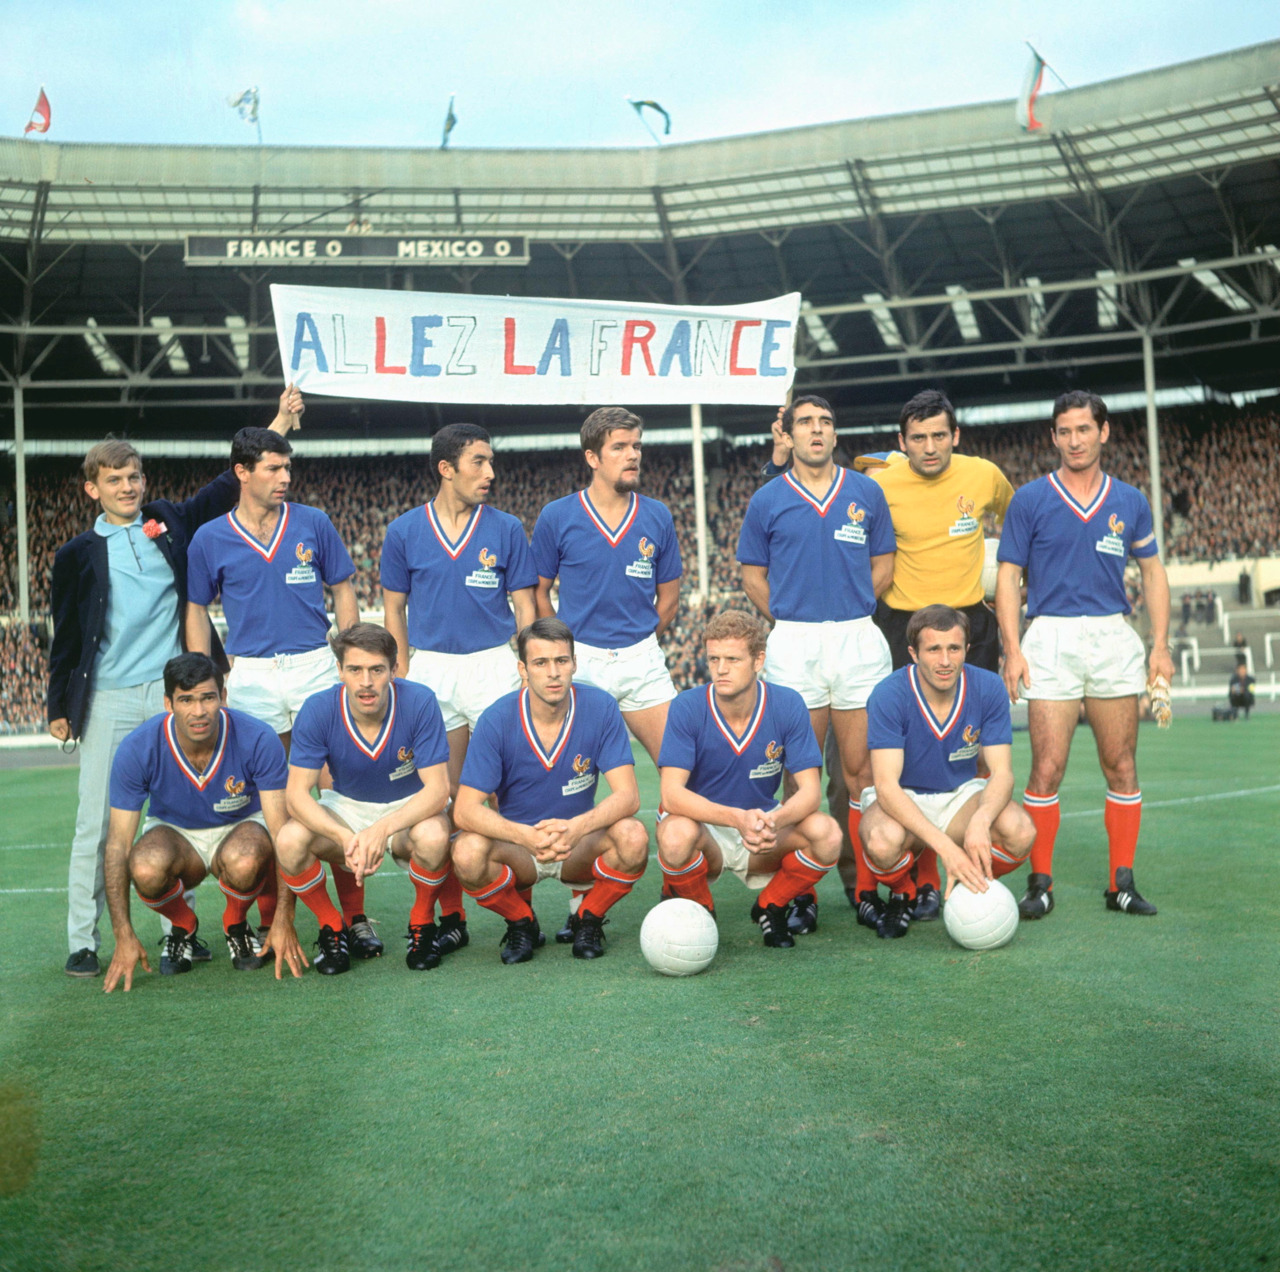 interleaning:  France to face Mexico, World Cup 1966.  De Michele, Djorkaeff, Budzynski, Bosquier, Aubour, Artelesa; Combin, Bonnel, Gondet, Herbin, Hausser.